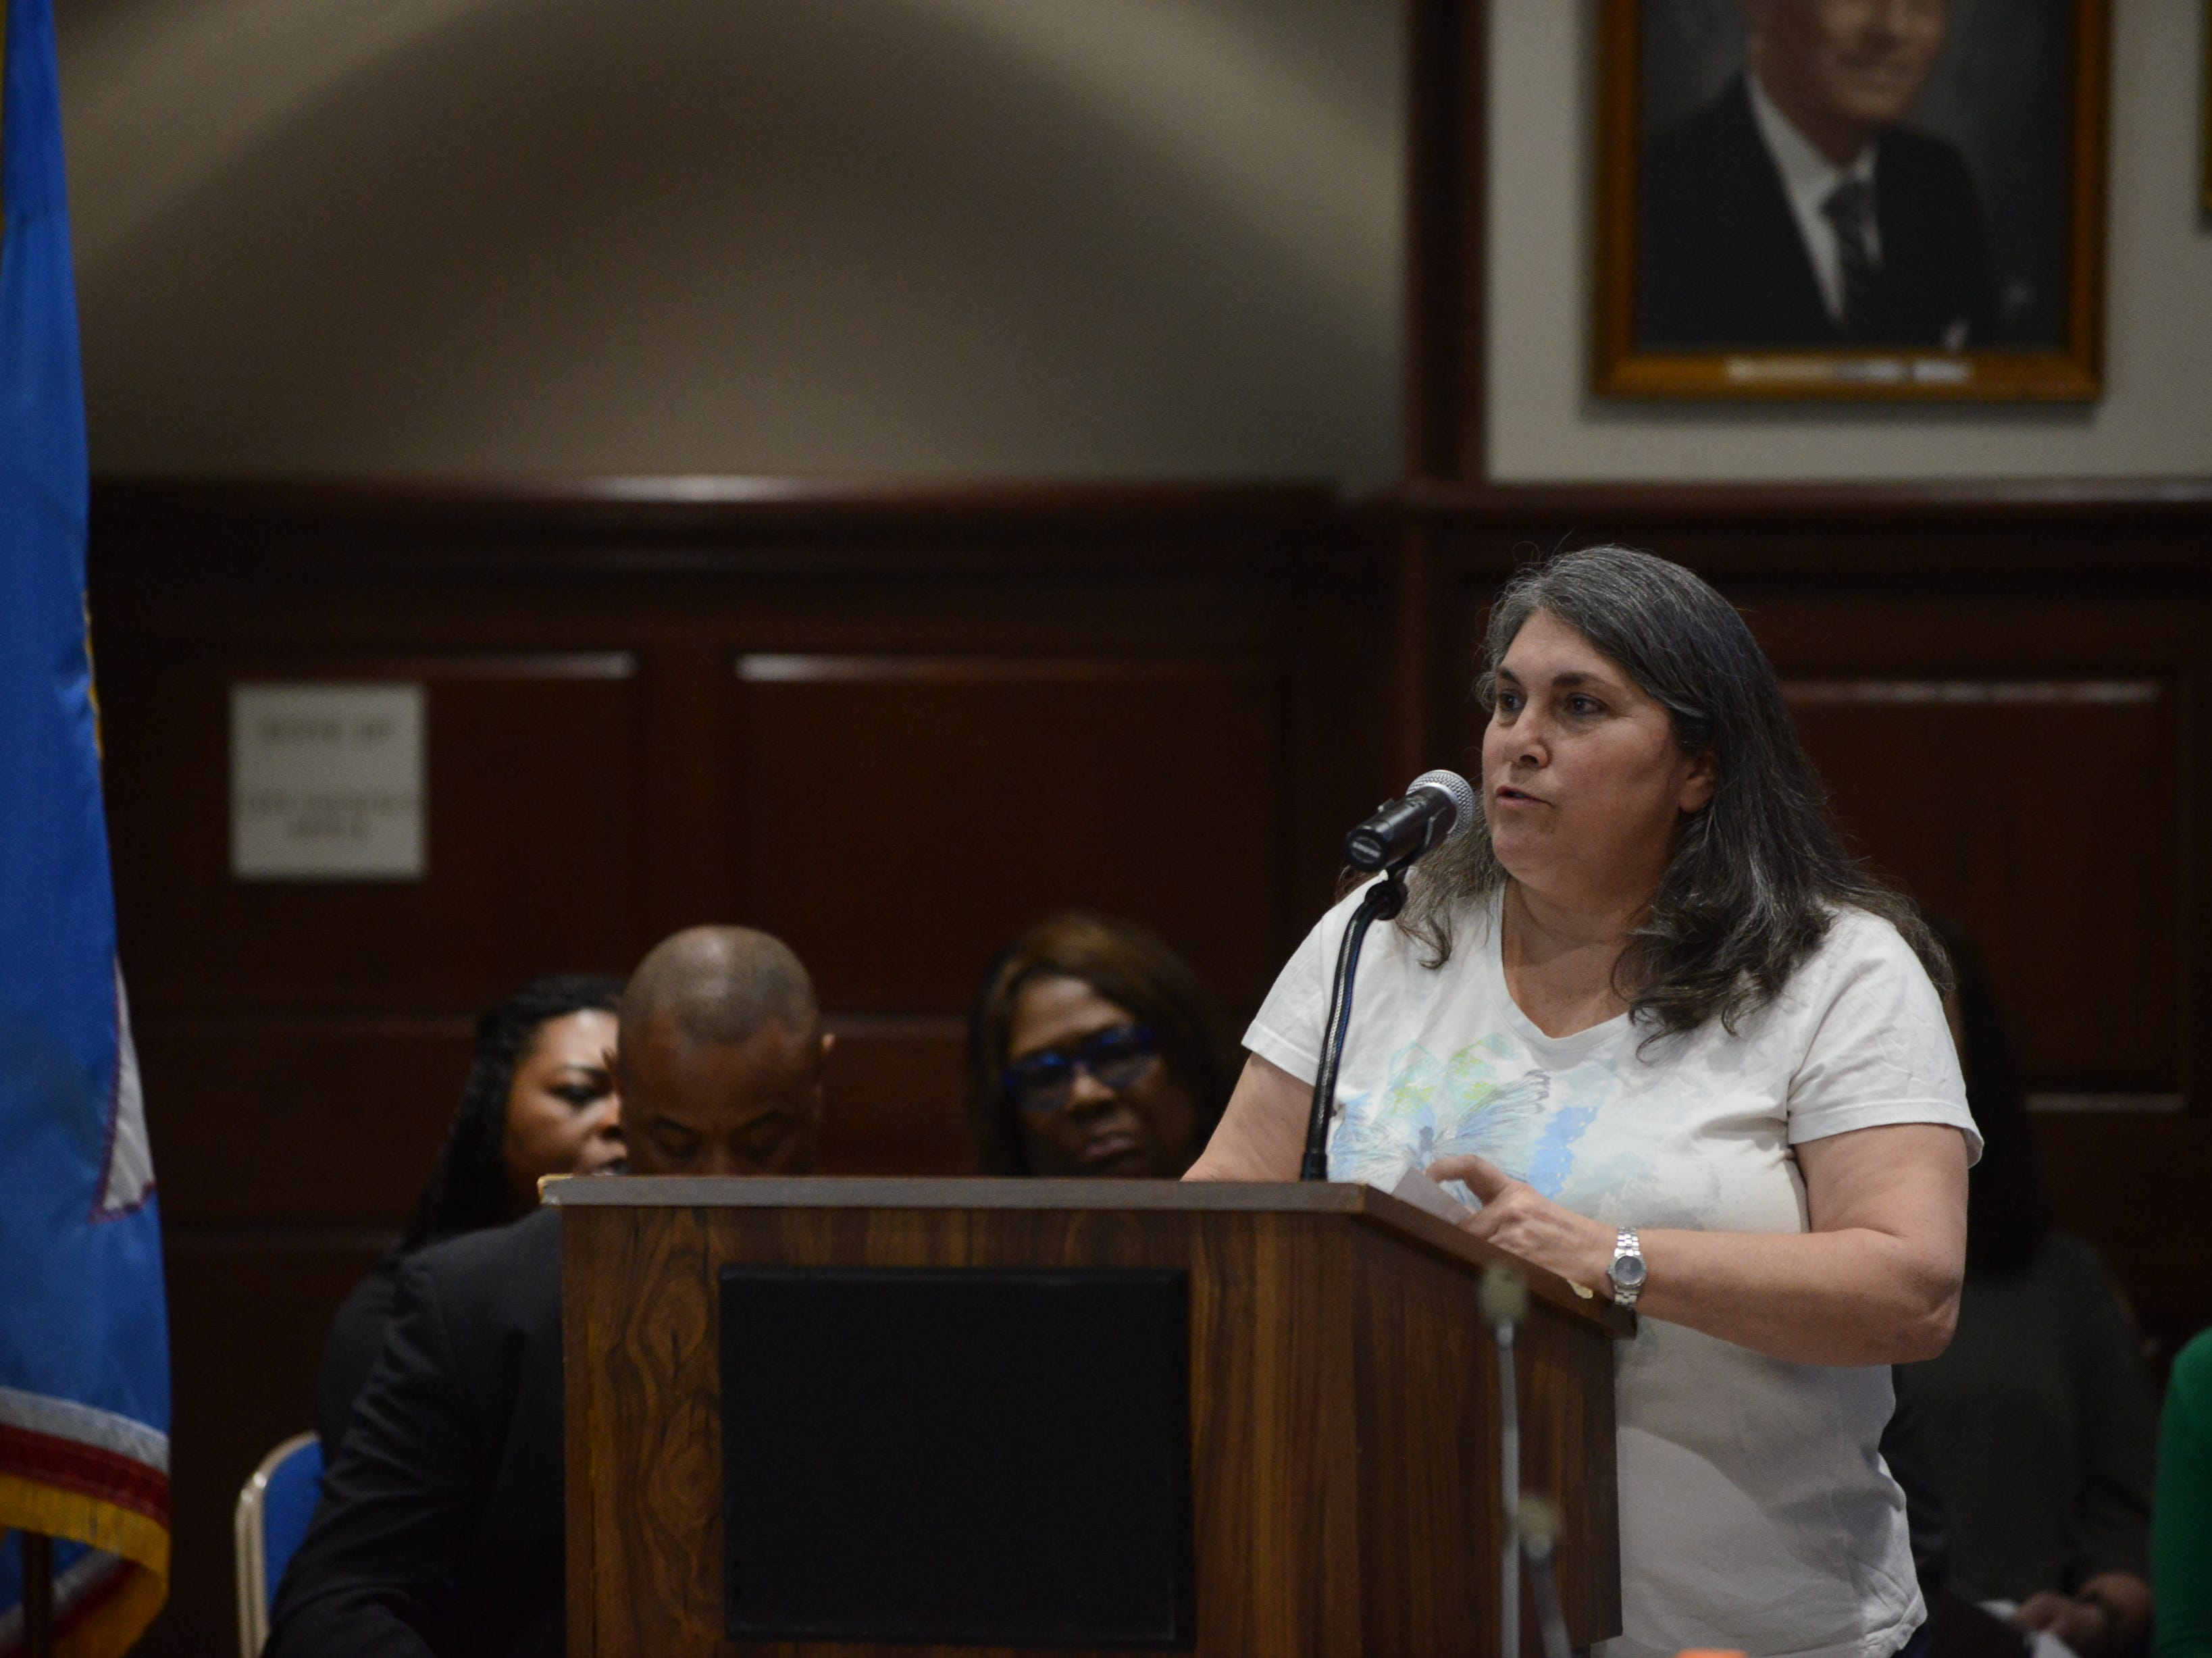 An East Elementary School teacher said JMCSS has made gains in education in recent years and spoke in support of Superintendent Eric Jones during public comment at the JMC school board meeting at Jackson City Hall on Thursday night.